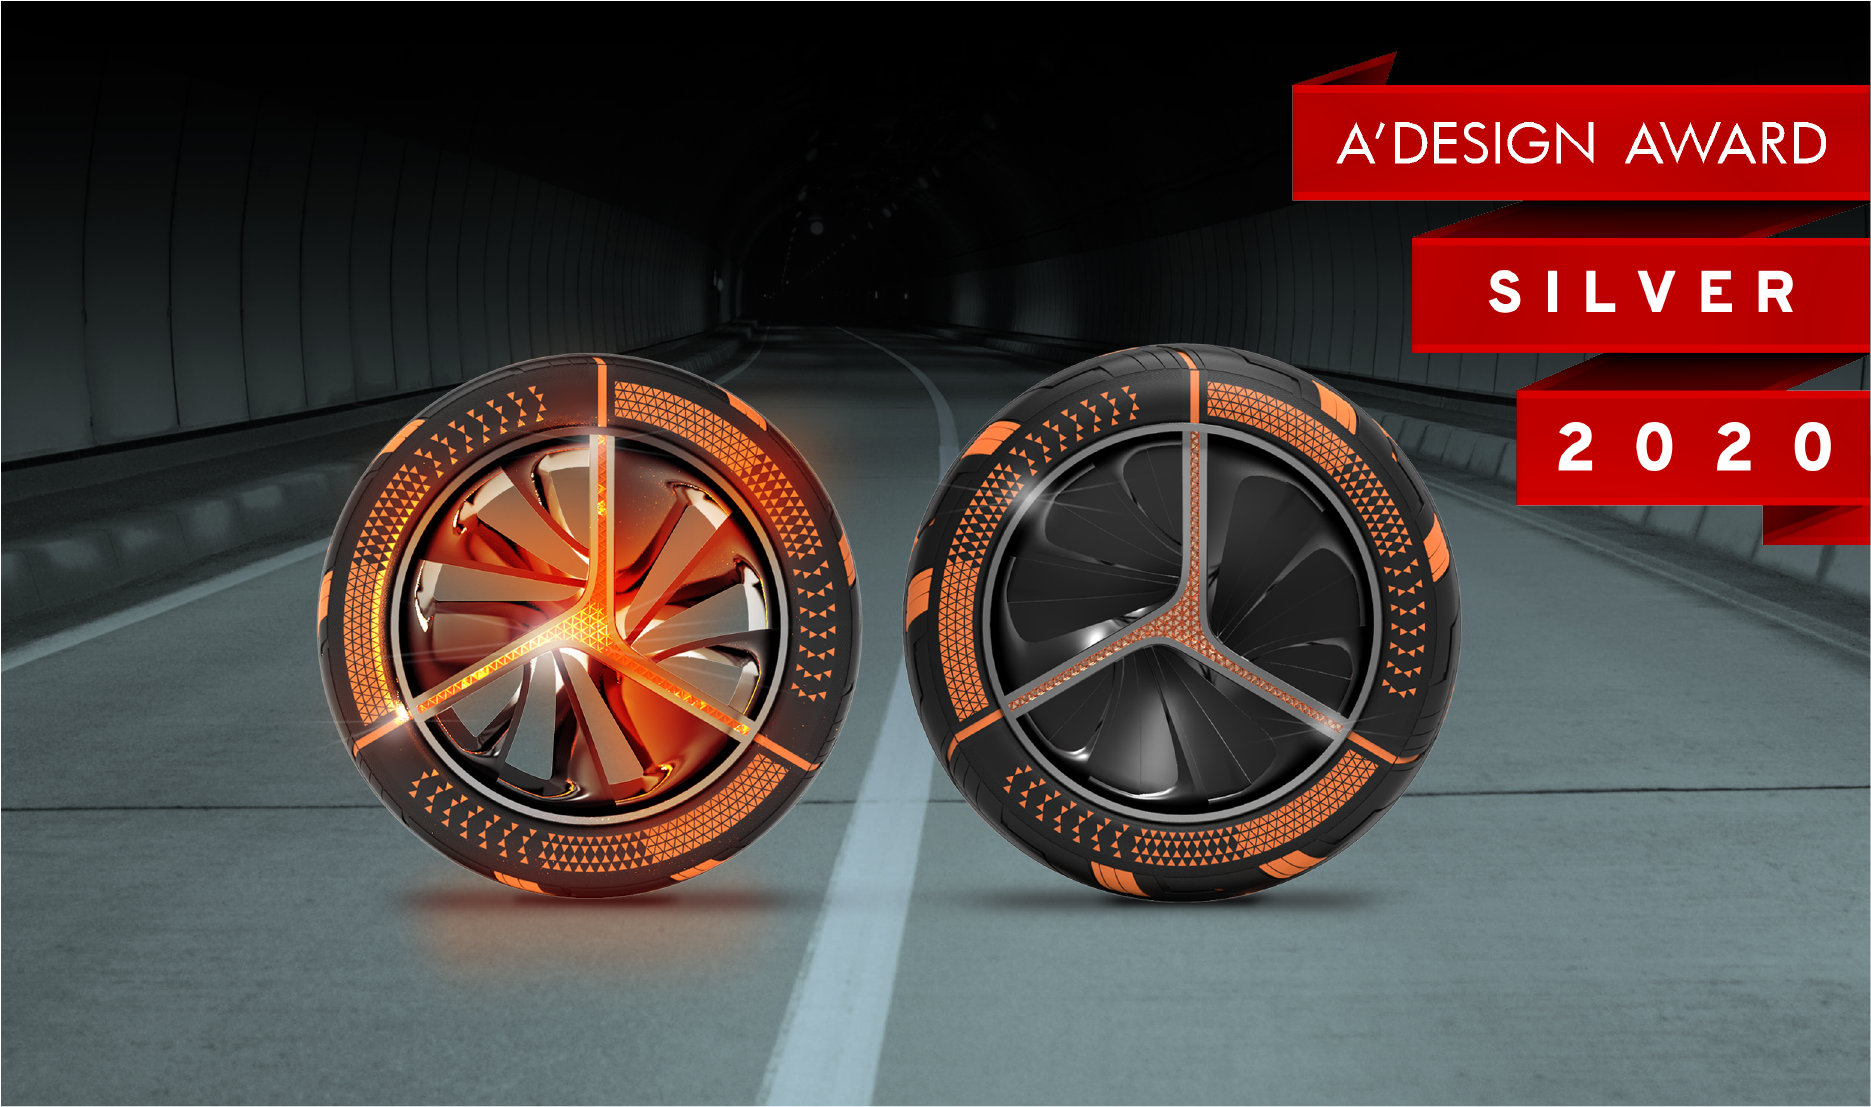 Maxxis Tyres bags A'Design Award as Best Automotive Accessory